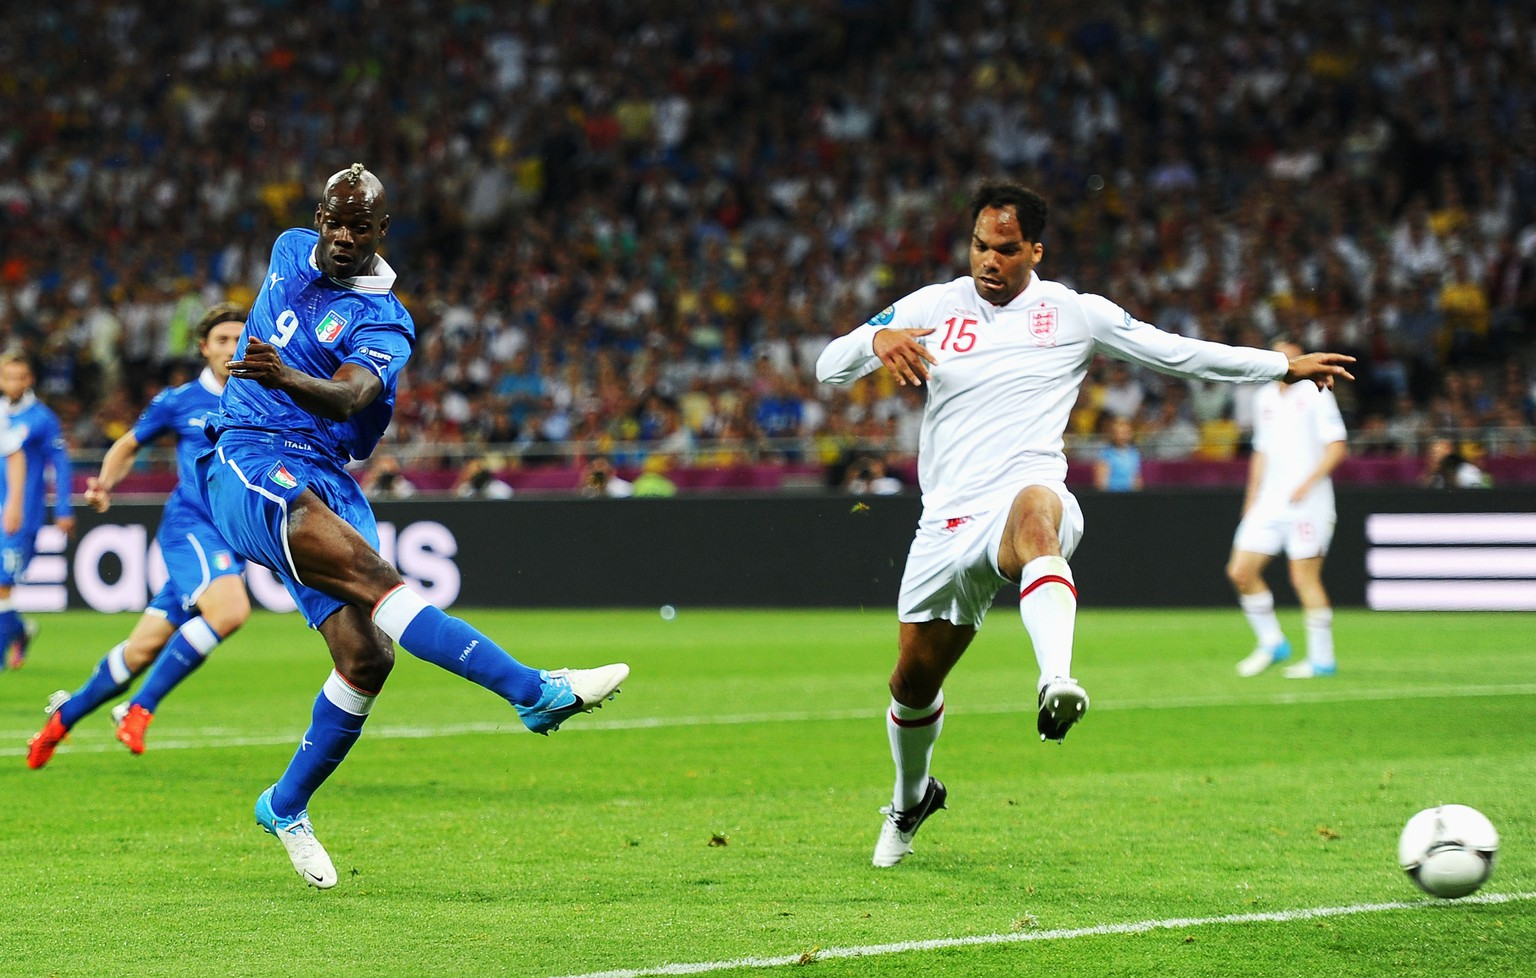 KIEV, UKRAINE - JUNE 24: Mario Balotelli of Italy strikes the ball as Joleon Lescott of England runs in during the UEFA EURO 2012 quarter final match between England and Italy at The Olympic Stadium on June 24, 2012 in Kiev, Ukraine.  (Photo by Laurence Griffiths/Getty Images)